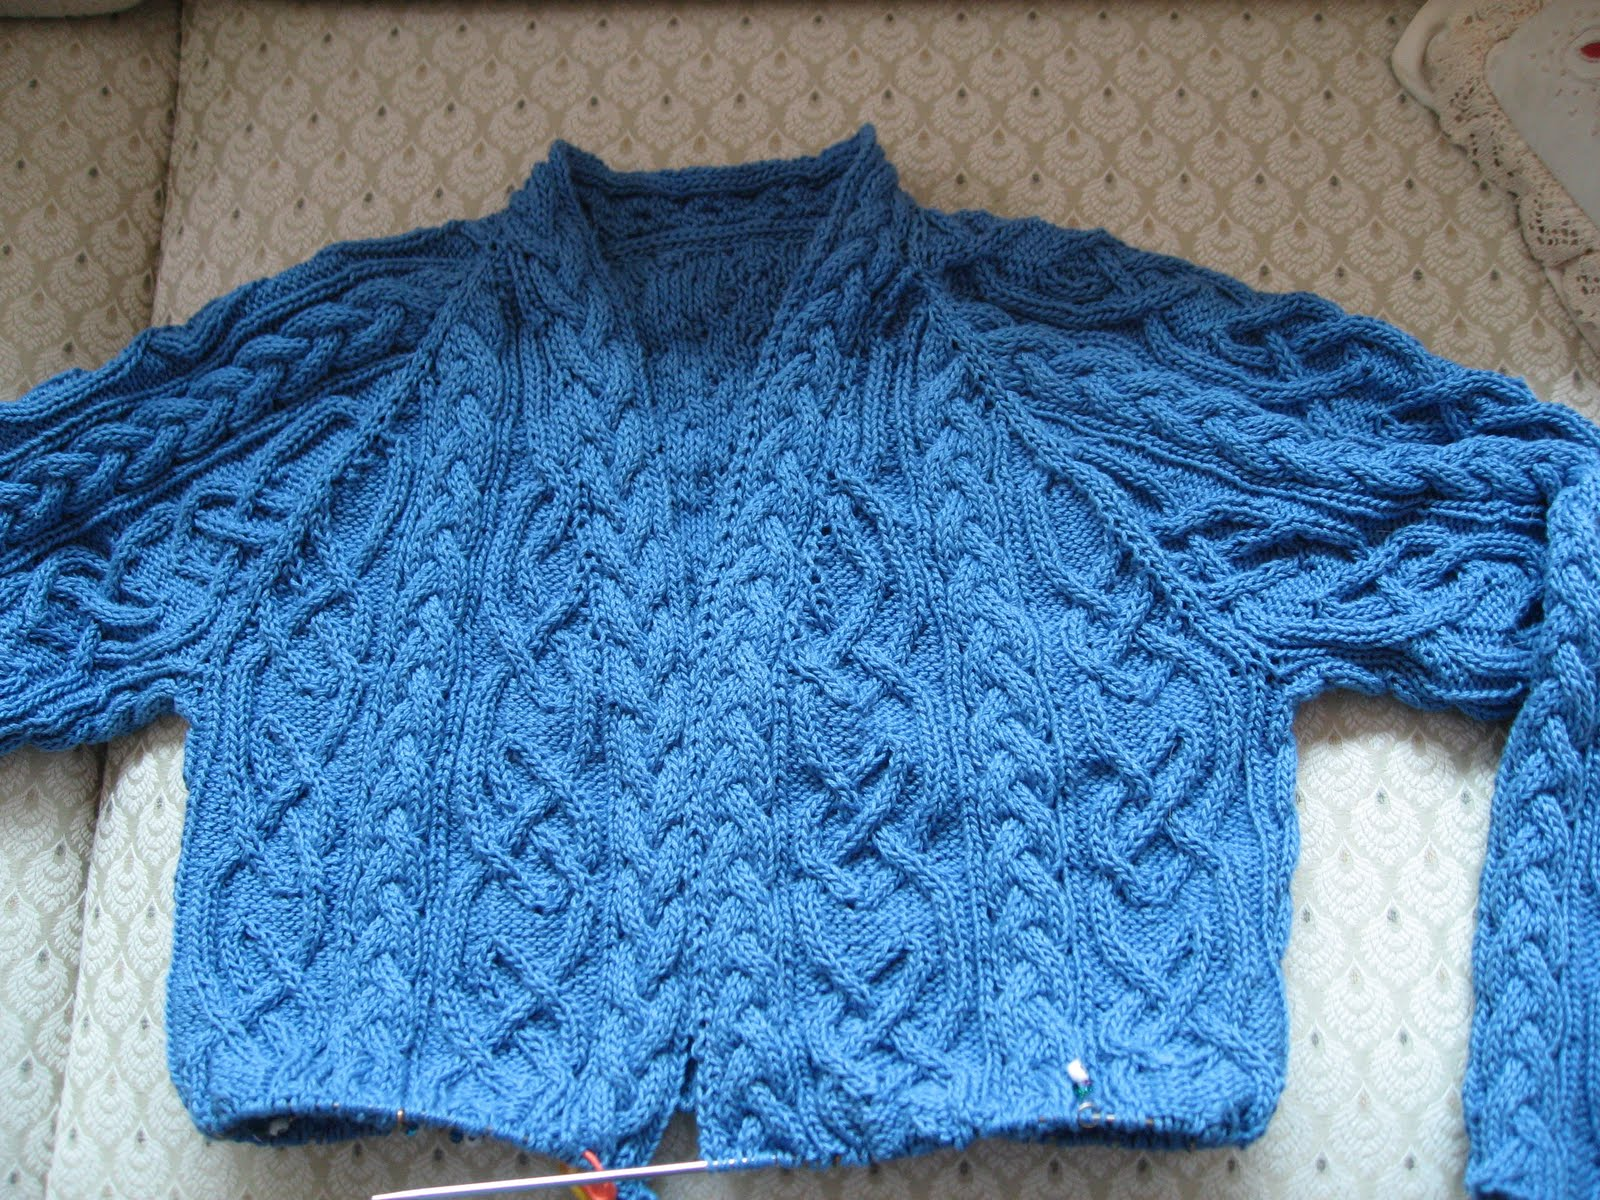 Jeri rigged st margaret cardigan i decided to write up a pattern for doing a complex celtic style cable sweater from the top down i designed two celtic knot cable patterns based on various bankloansurffo Image collections